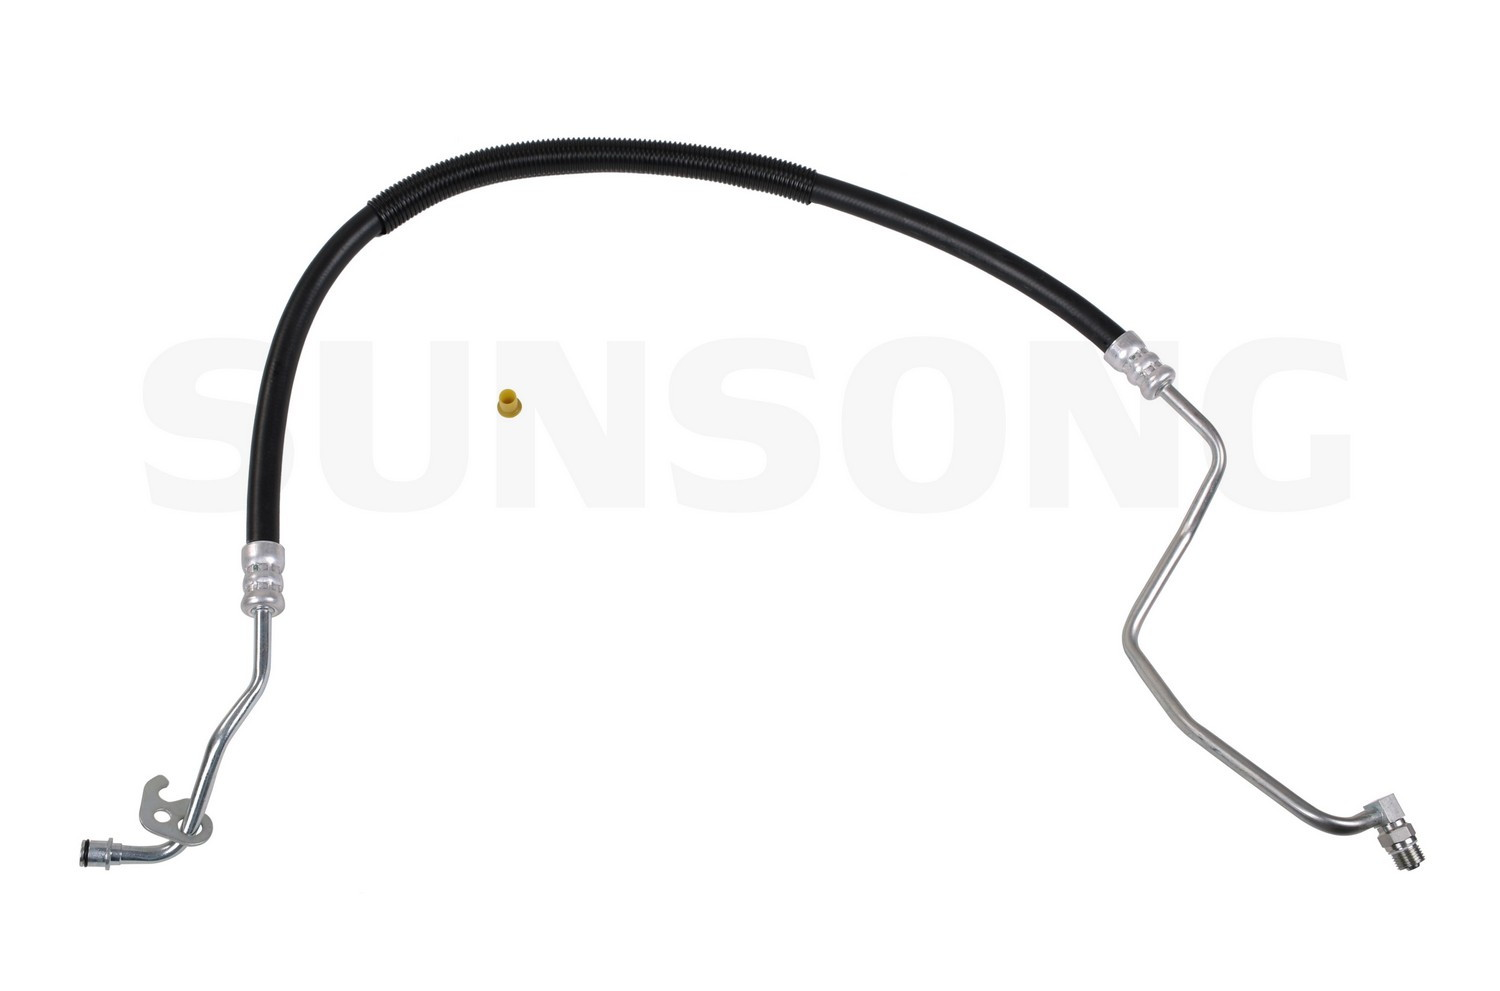 Ford F 150 Power Steering Pressure Line Hose Assembly